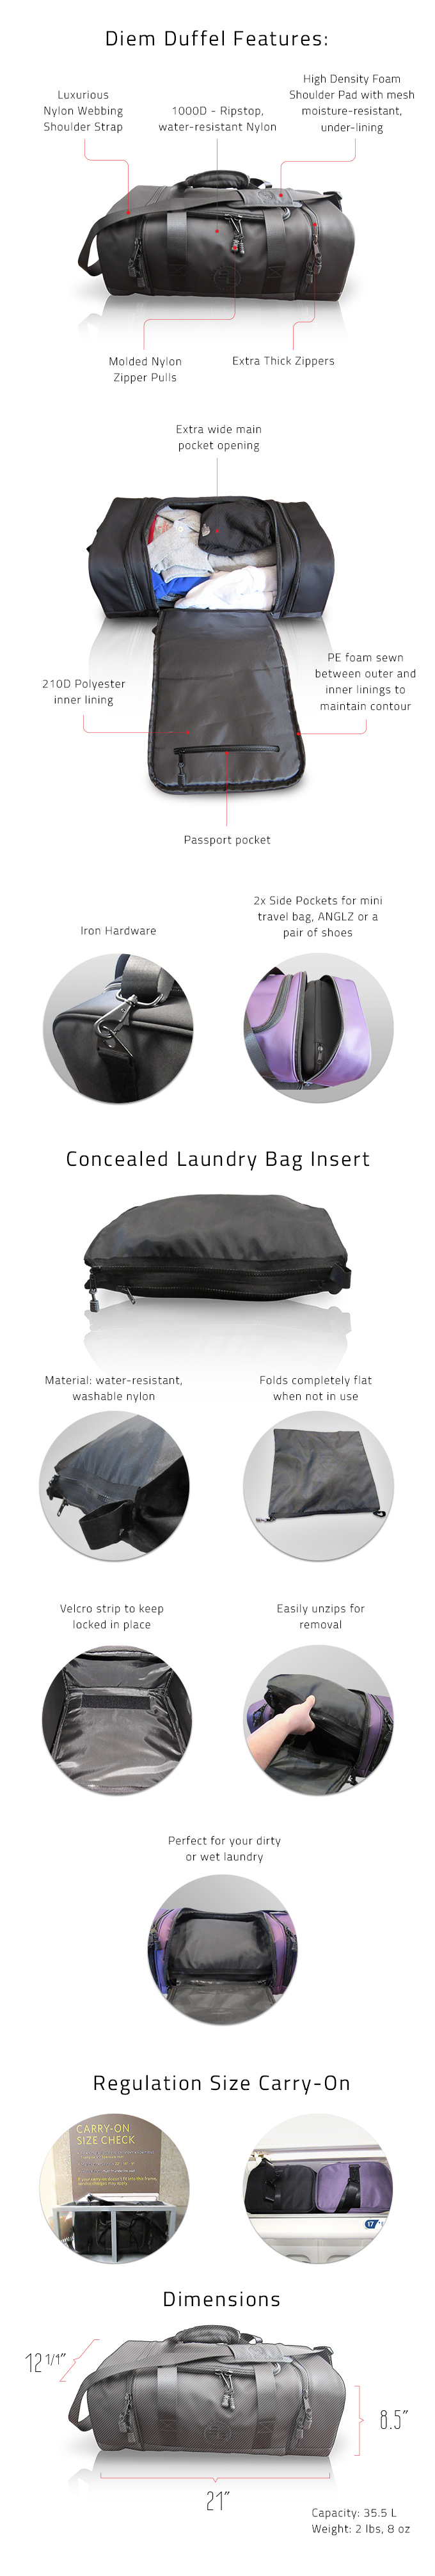 sg-productspecs-bigbag-laundrybag-pocket.jpg